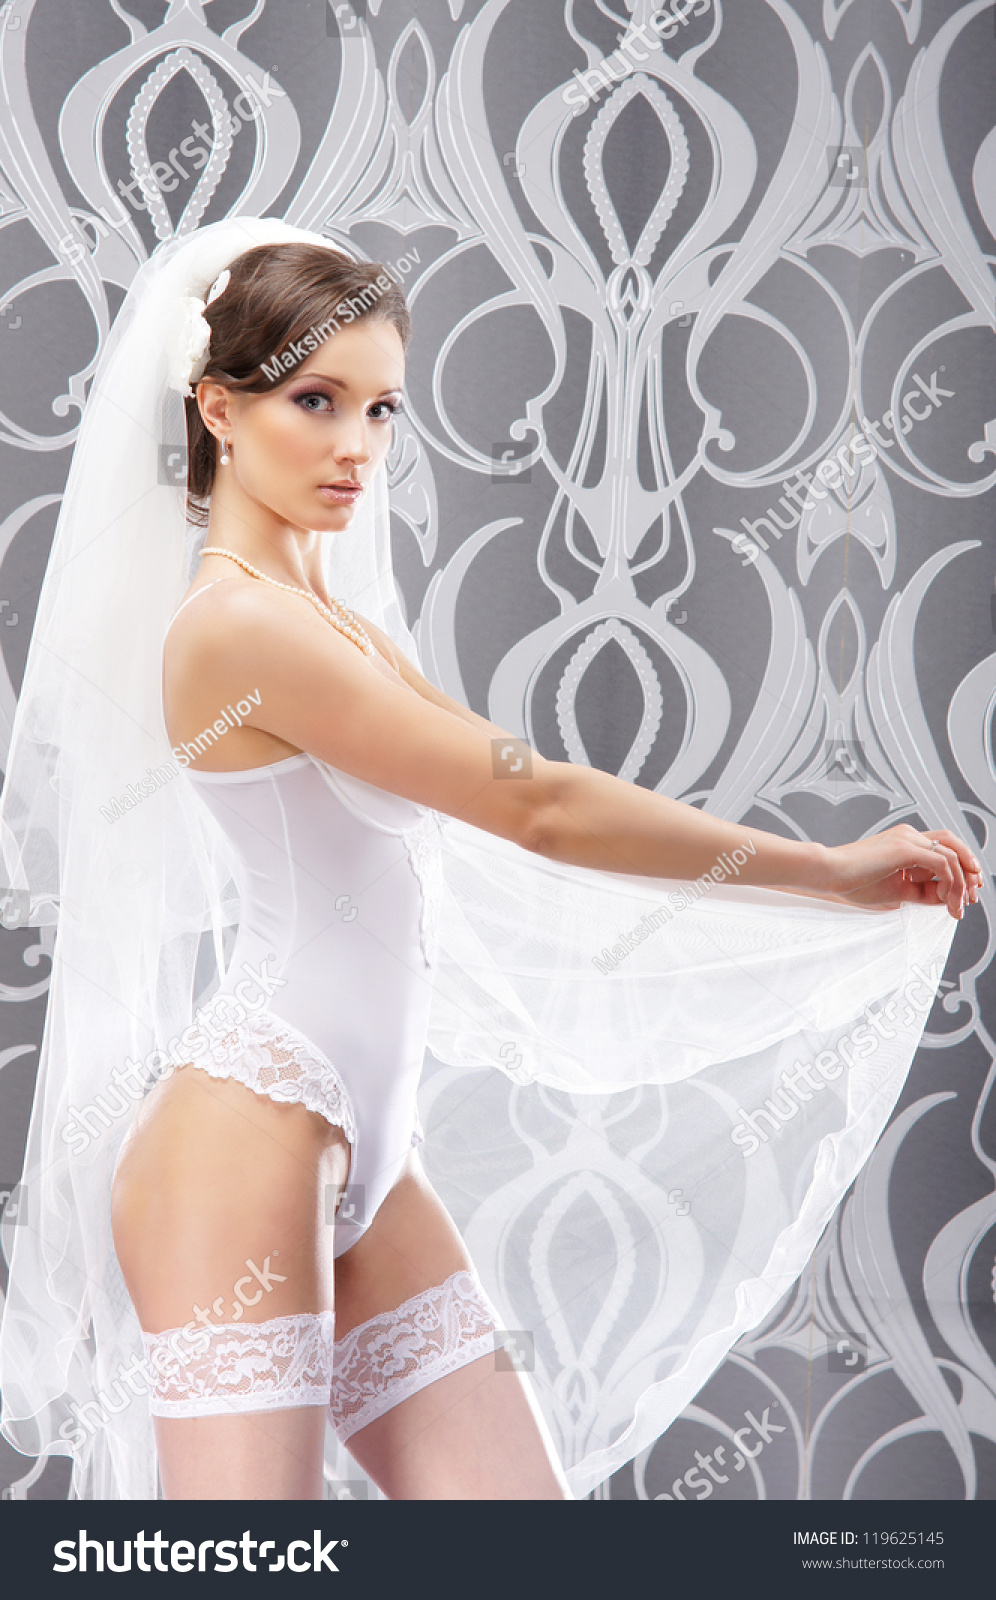 meet brides donna escort